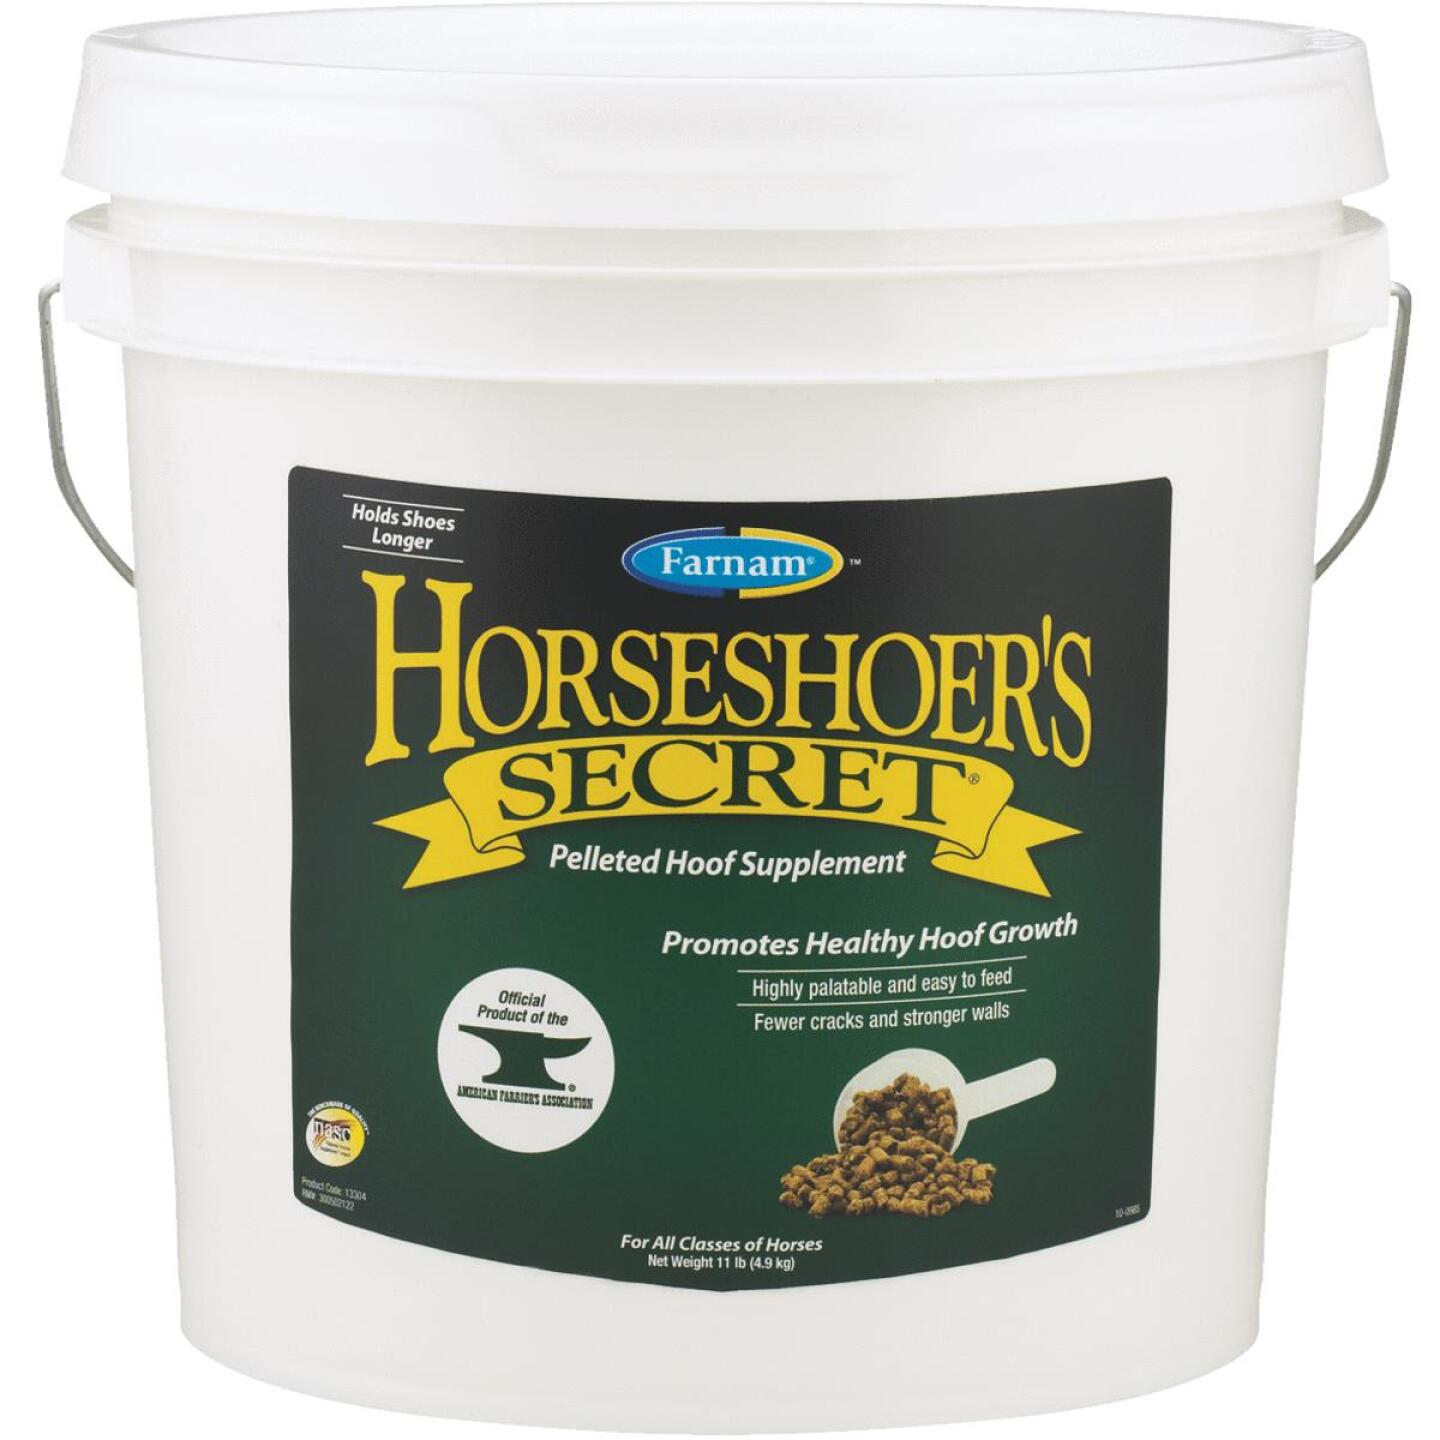 Farnam Horseshoer's Secret 11 Lb. Horse Feed Hoof Supplement Image 1